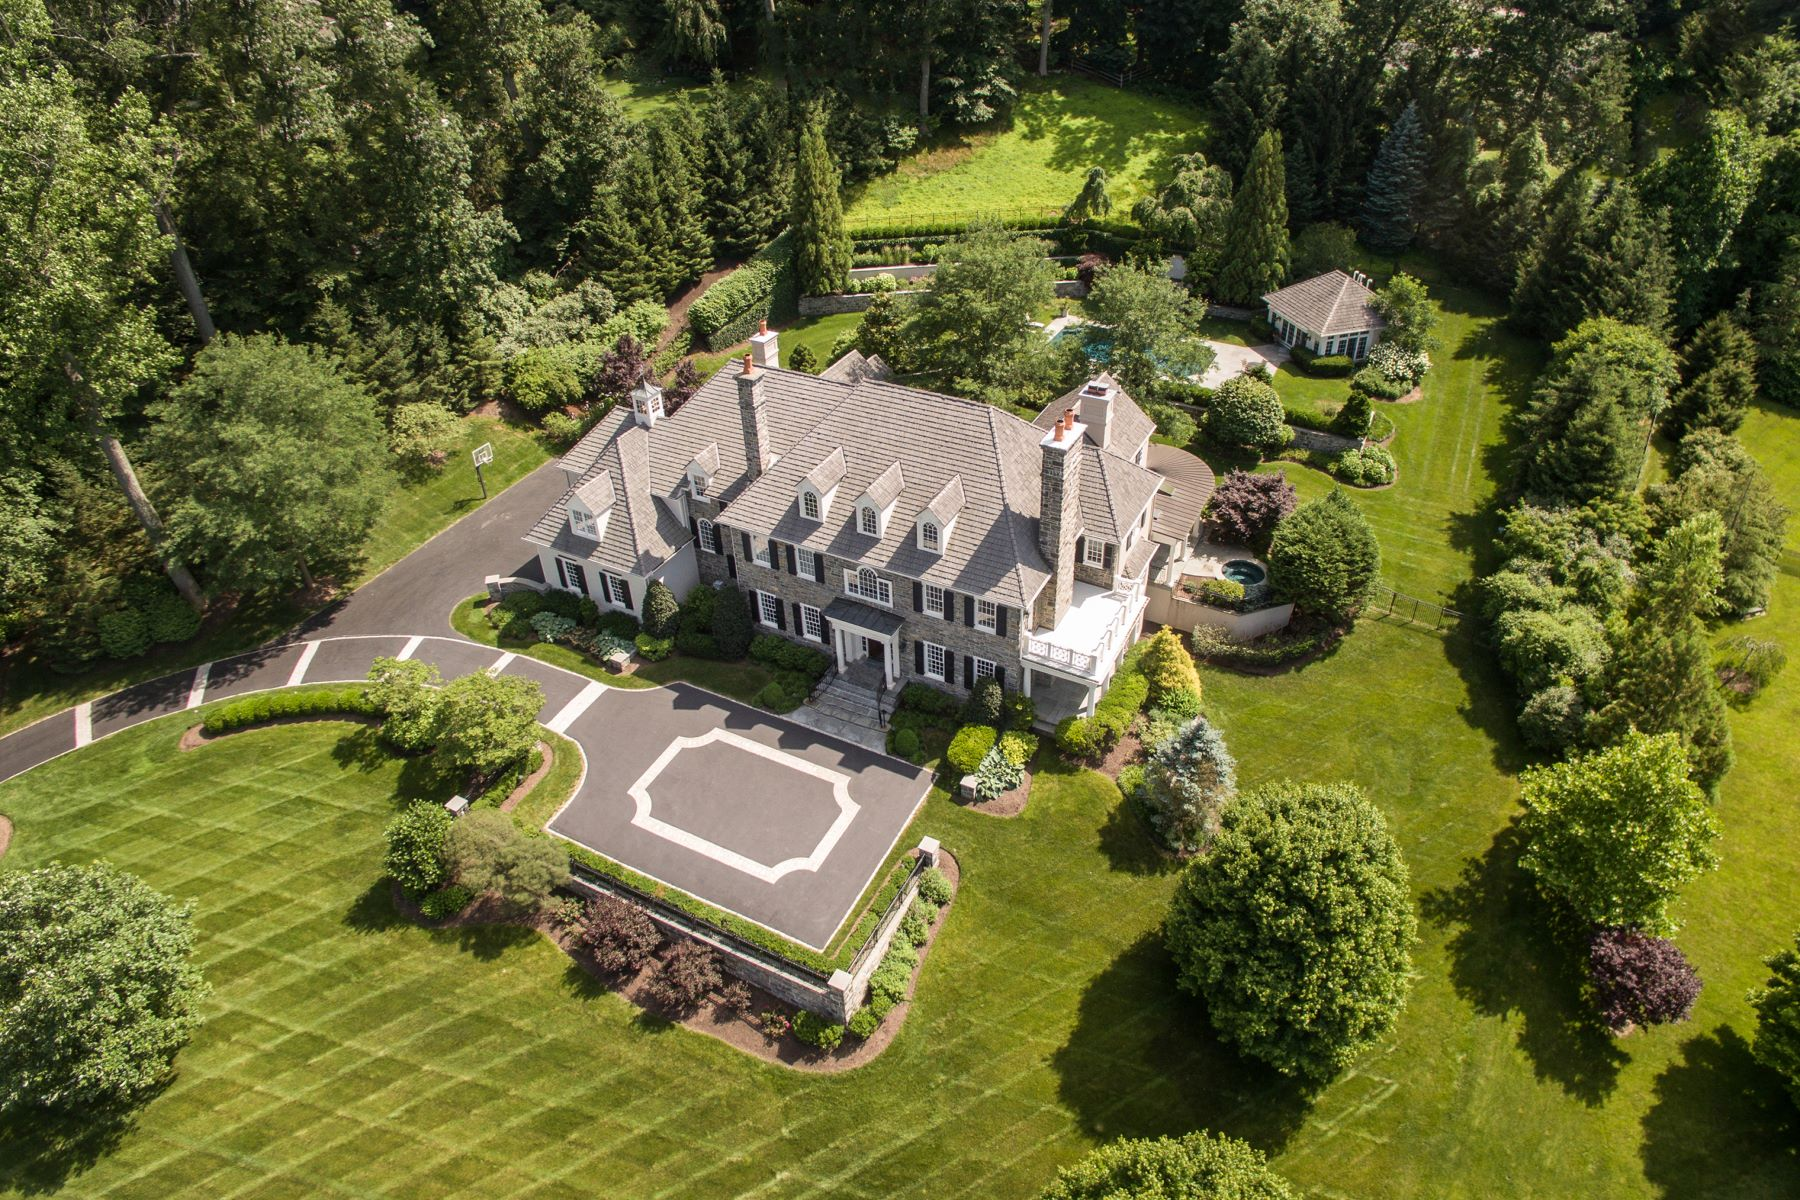 Single Family Home for Sale at 103 Mill View Ln Newtown Square, Pennsylvania 19073 United States